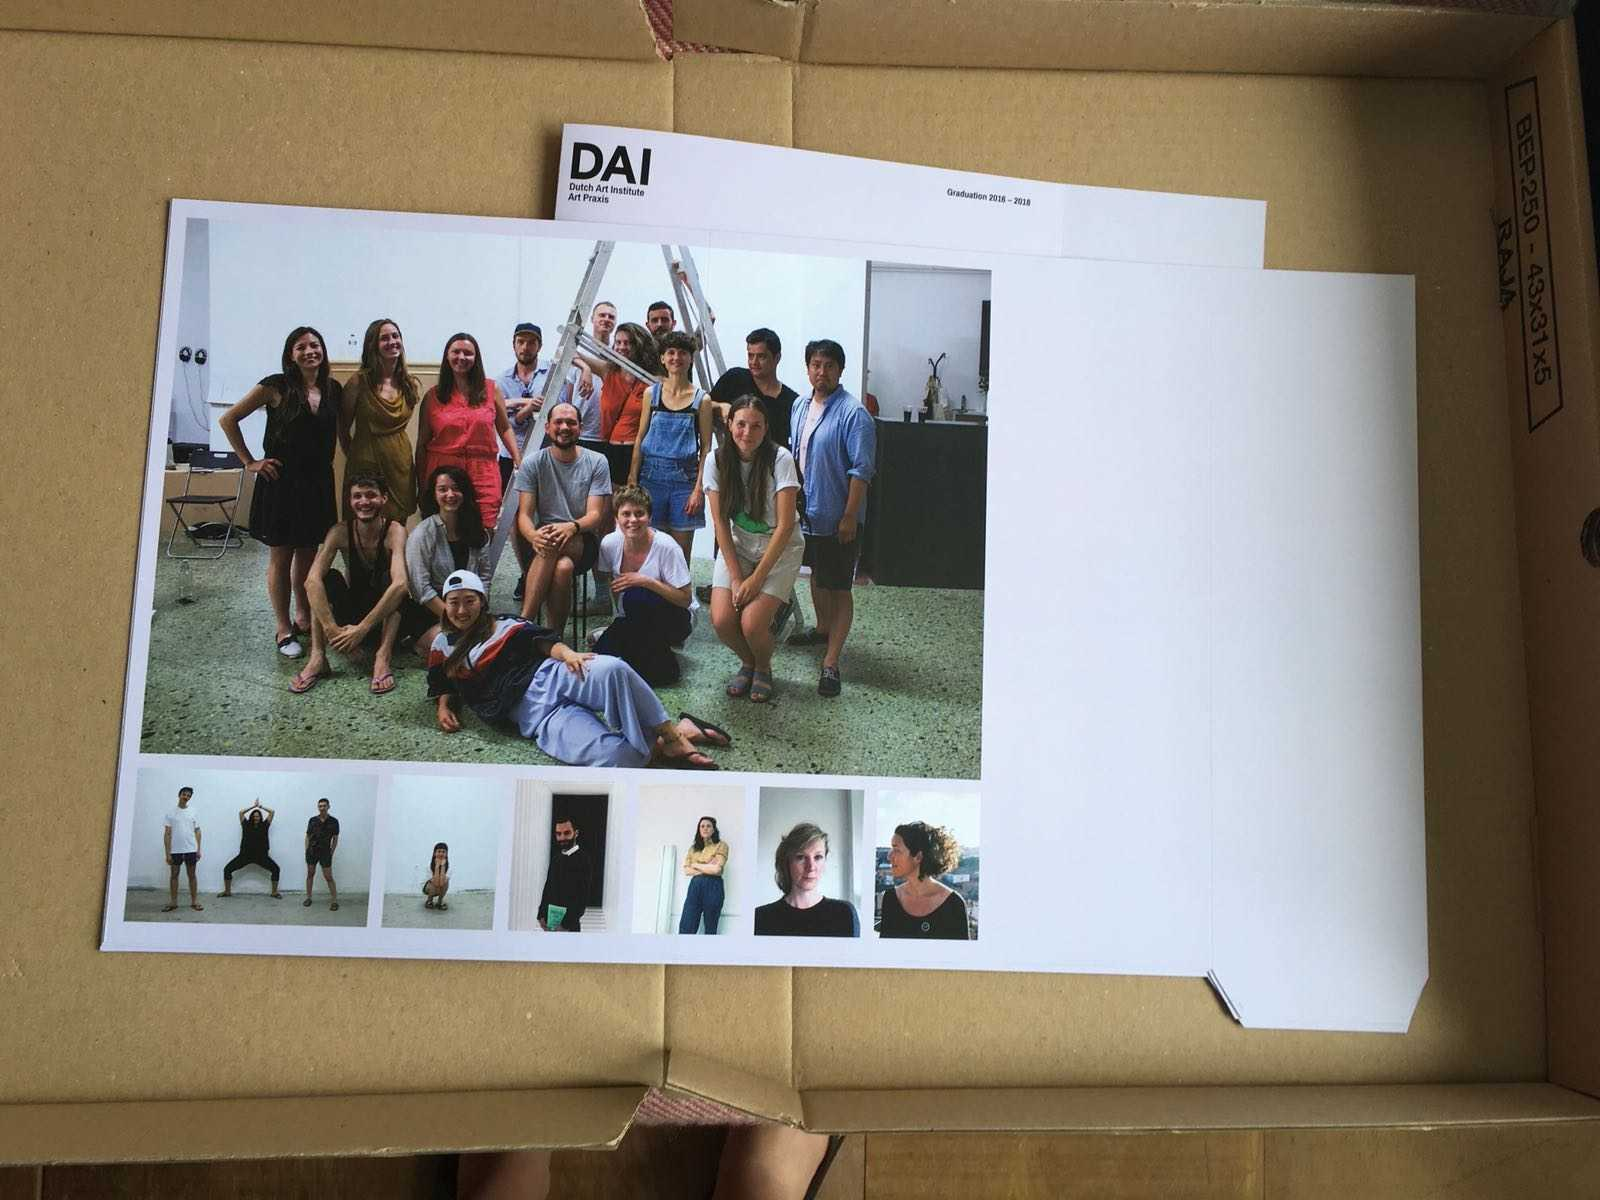 DAI Graduation Booklet 2018 in the making. Design: Lauren Alexander & Hanna Rullmann.Group portrait: Silvia Ulloa for DAI in Athens, May 2018.